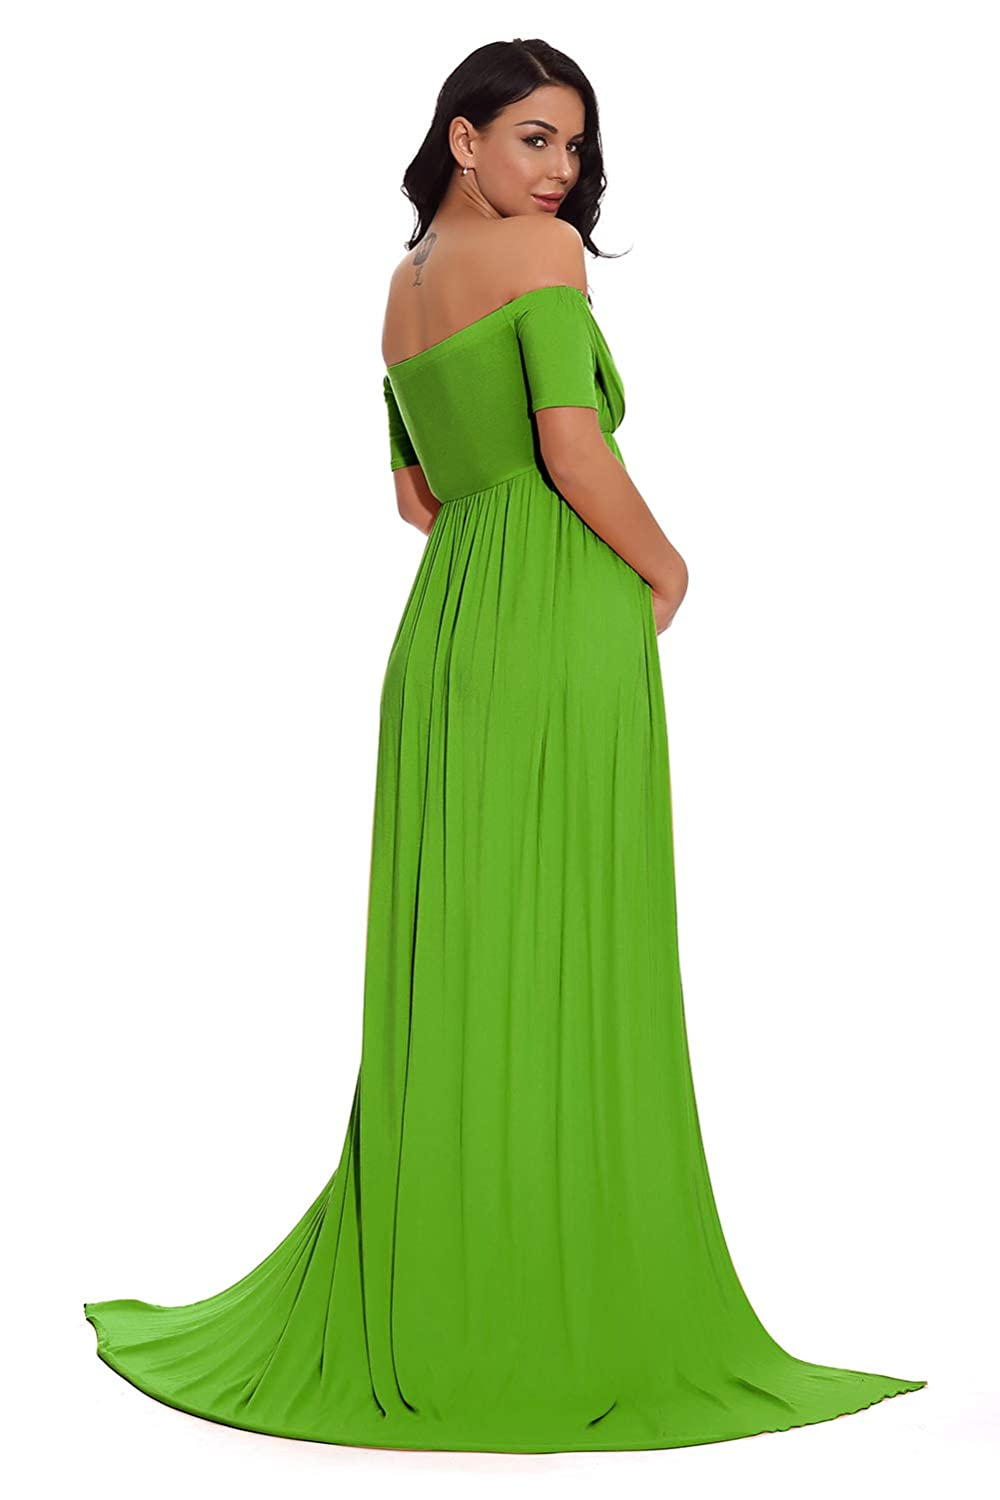 ZIUMUDY Maternity Off Shoulder Strapless Gown Split Front Maxi Photoshoot Photography Dress